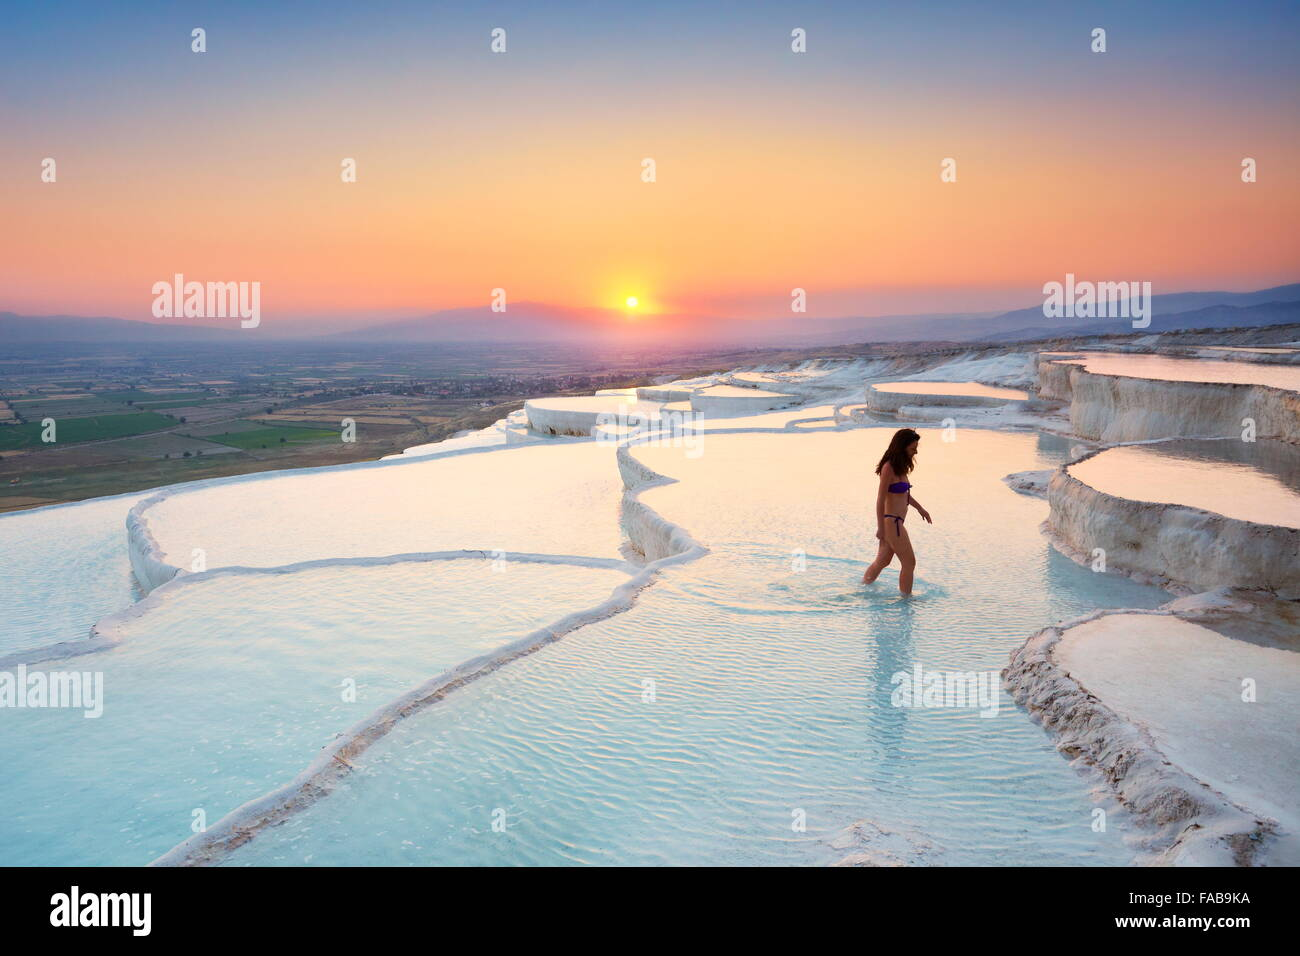 Pamukkale - limestone terraces at sunset, Pamukkale, Turkey Stock Photo